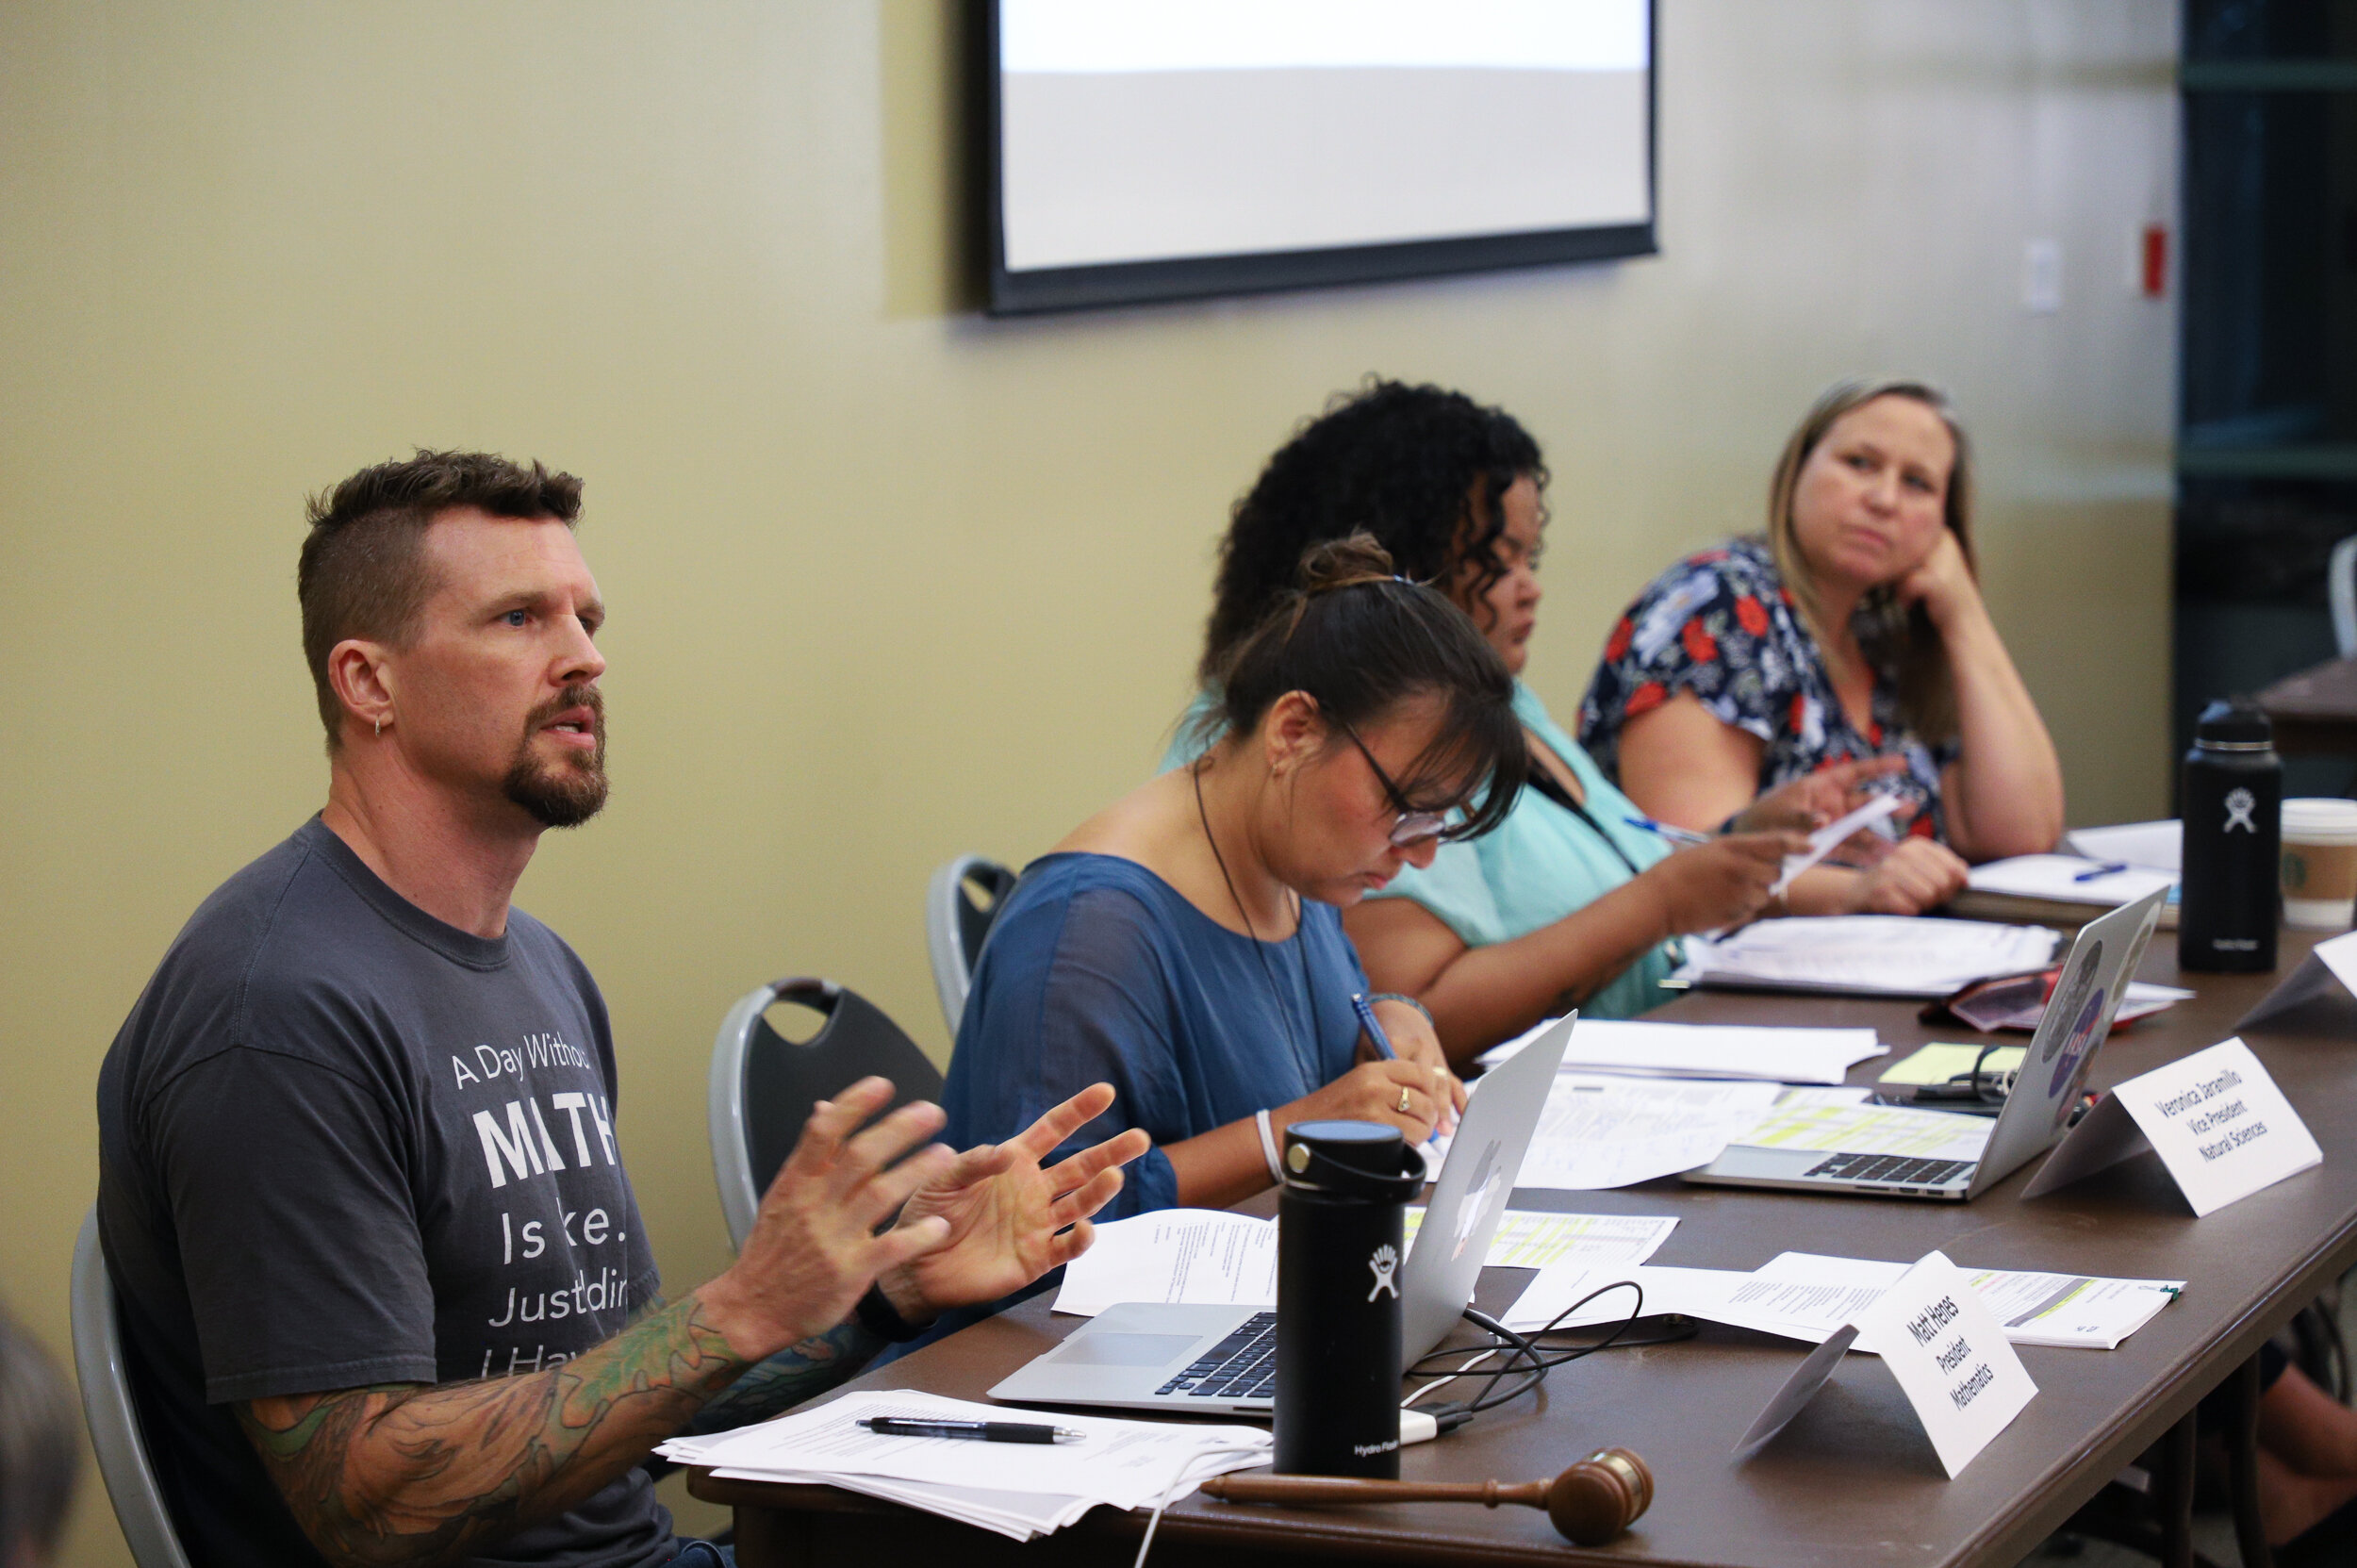 Nicholas Slobin/ Courier Matt Henes, president of the Academic Senate, speaks during the Academic Senate Board Meeting at Pasadena City College on Monday, September 9, 2019.